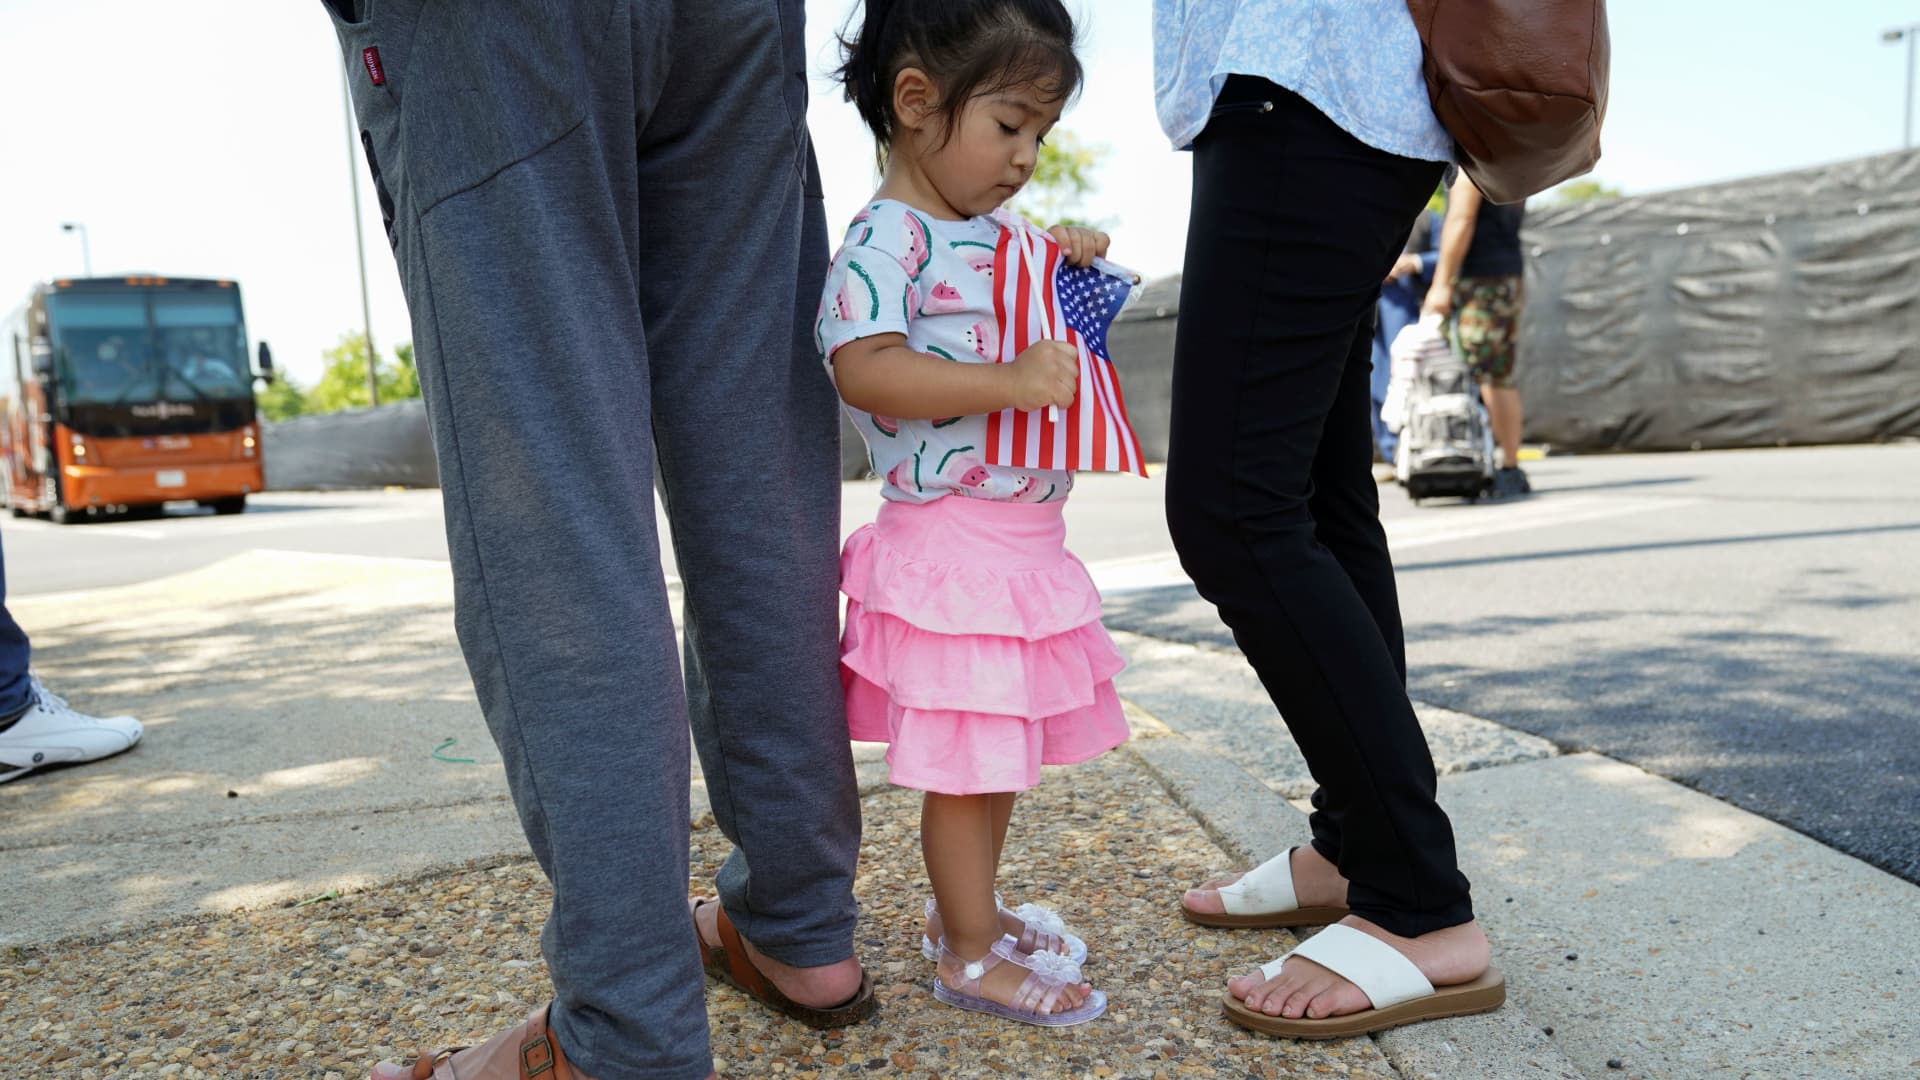 An Afghan girl holding a U.S. flag waits with her parents for relatives at a processing center for evacuees from Afghanistan near Dulles International Airport on Aug. 24, 2021.